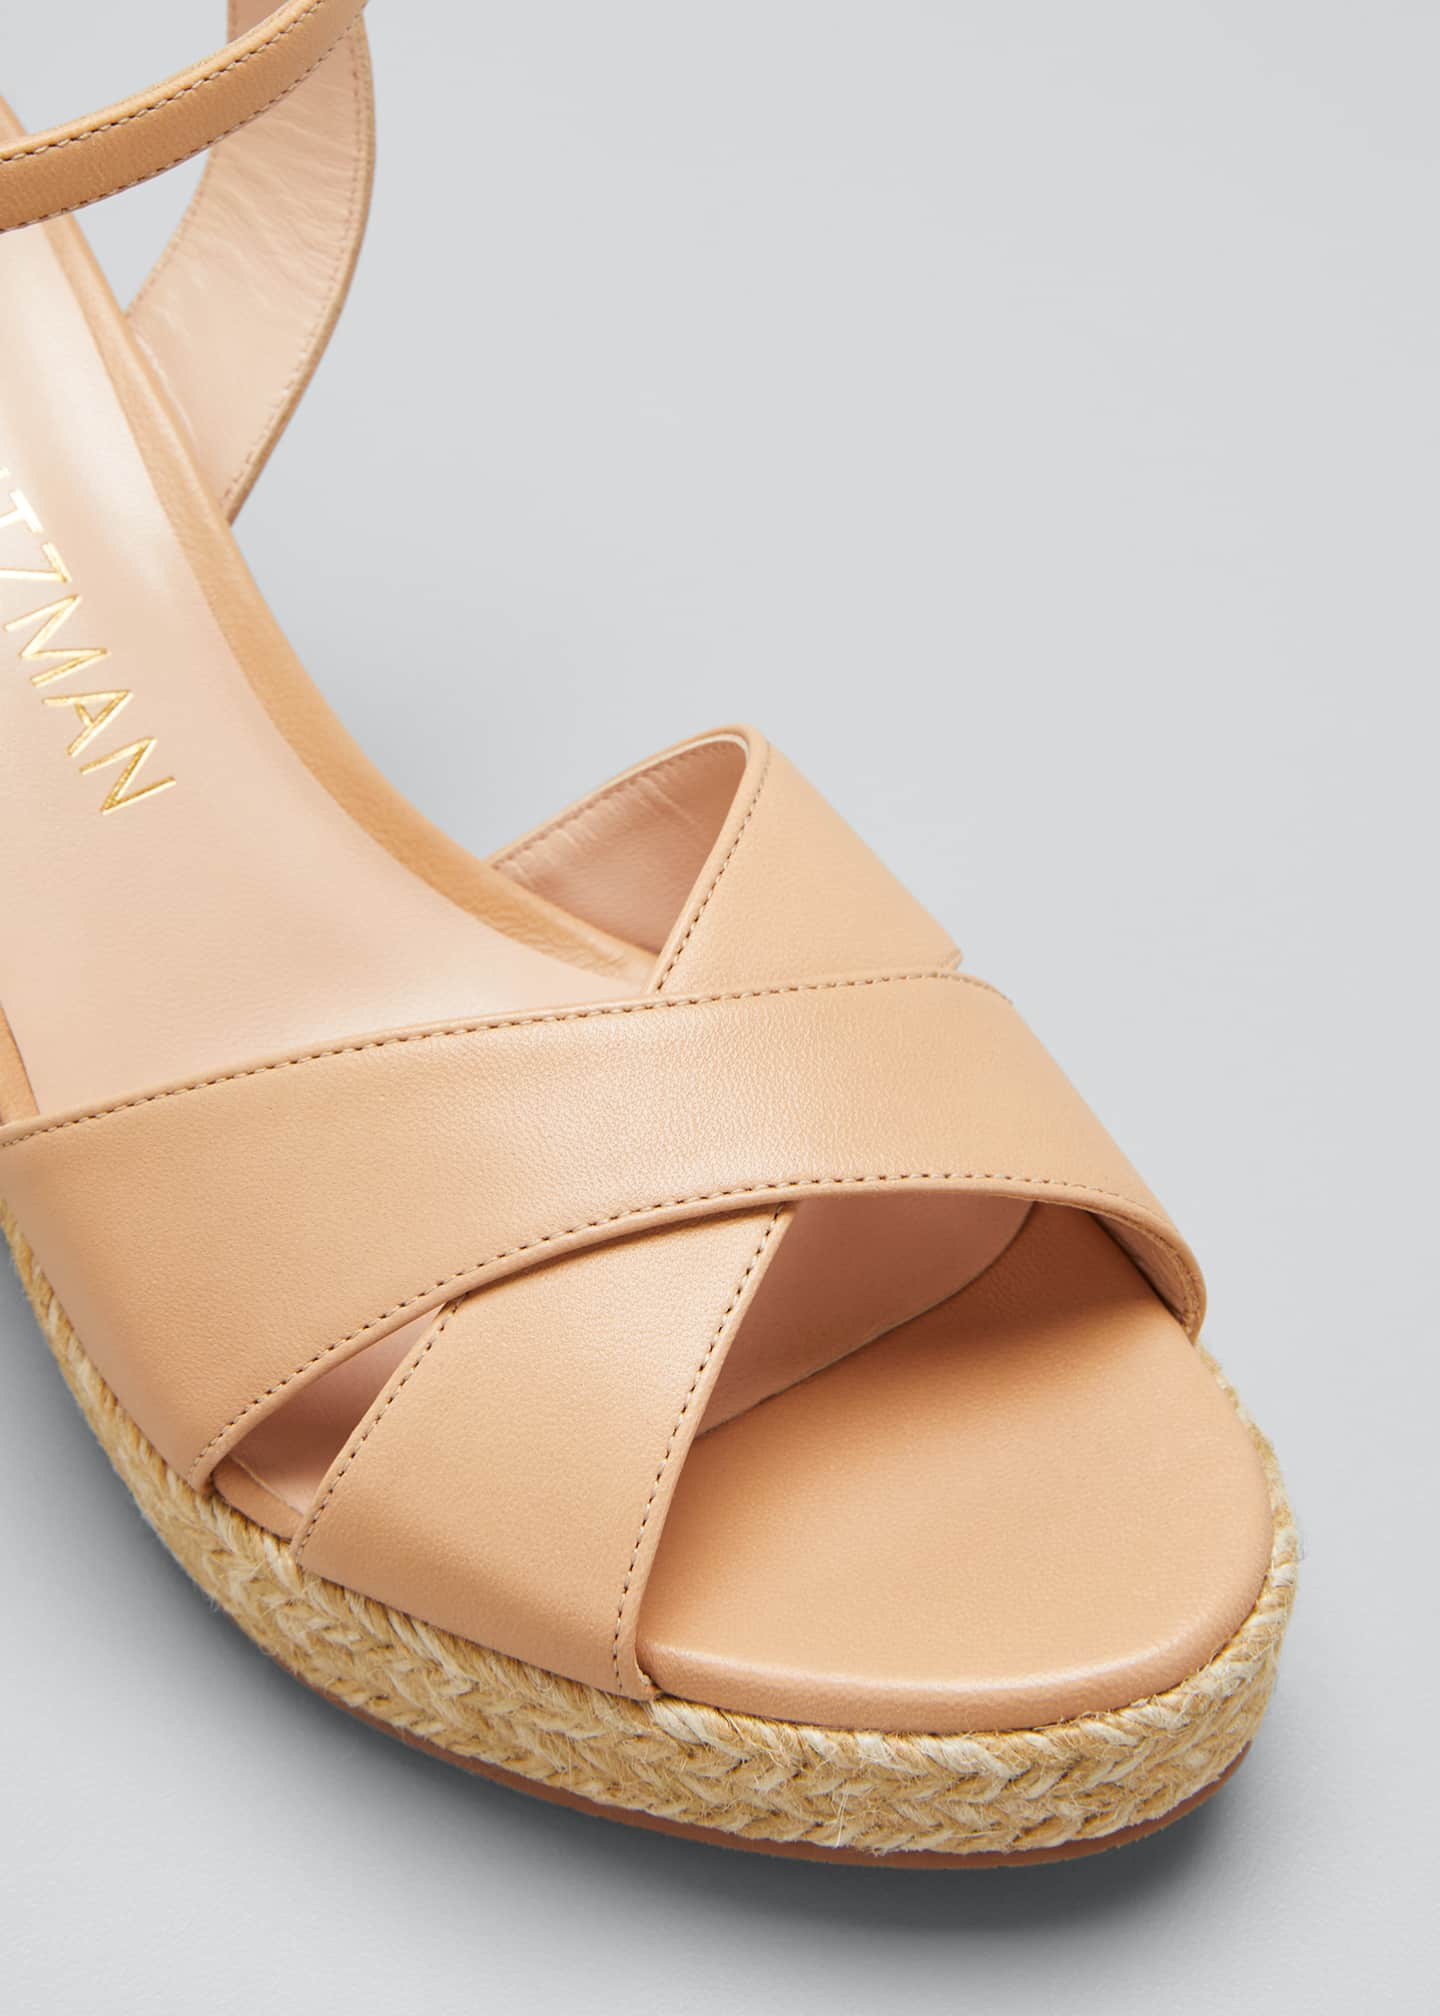 Image 5 of 5: Rosemarie Patent Wedge Espadrille Sandals